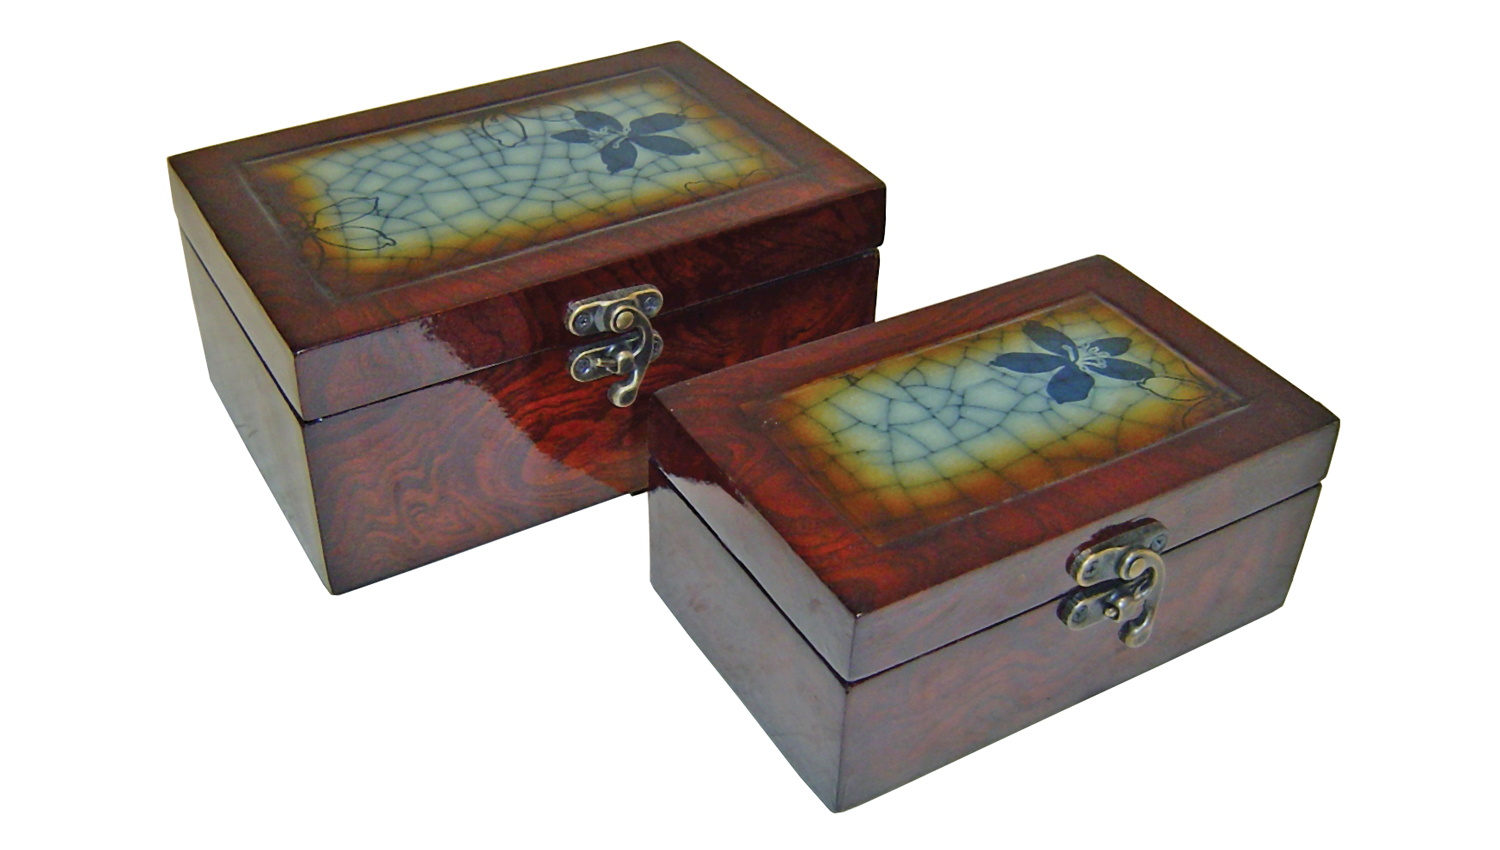 Cheungs Decorative Nesitng Crackling Blue Lined  Wooden Set of 2 Rectangular Keepsake Treasure Storage  Box With Brass Latch at Sears.com